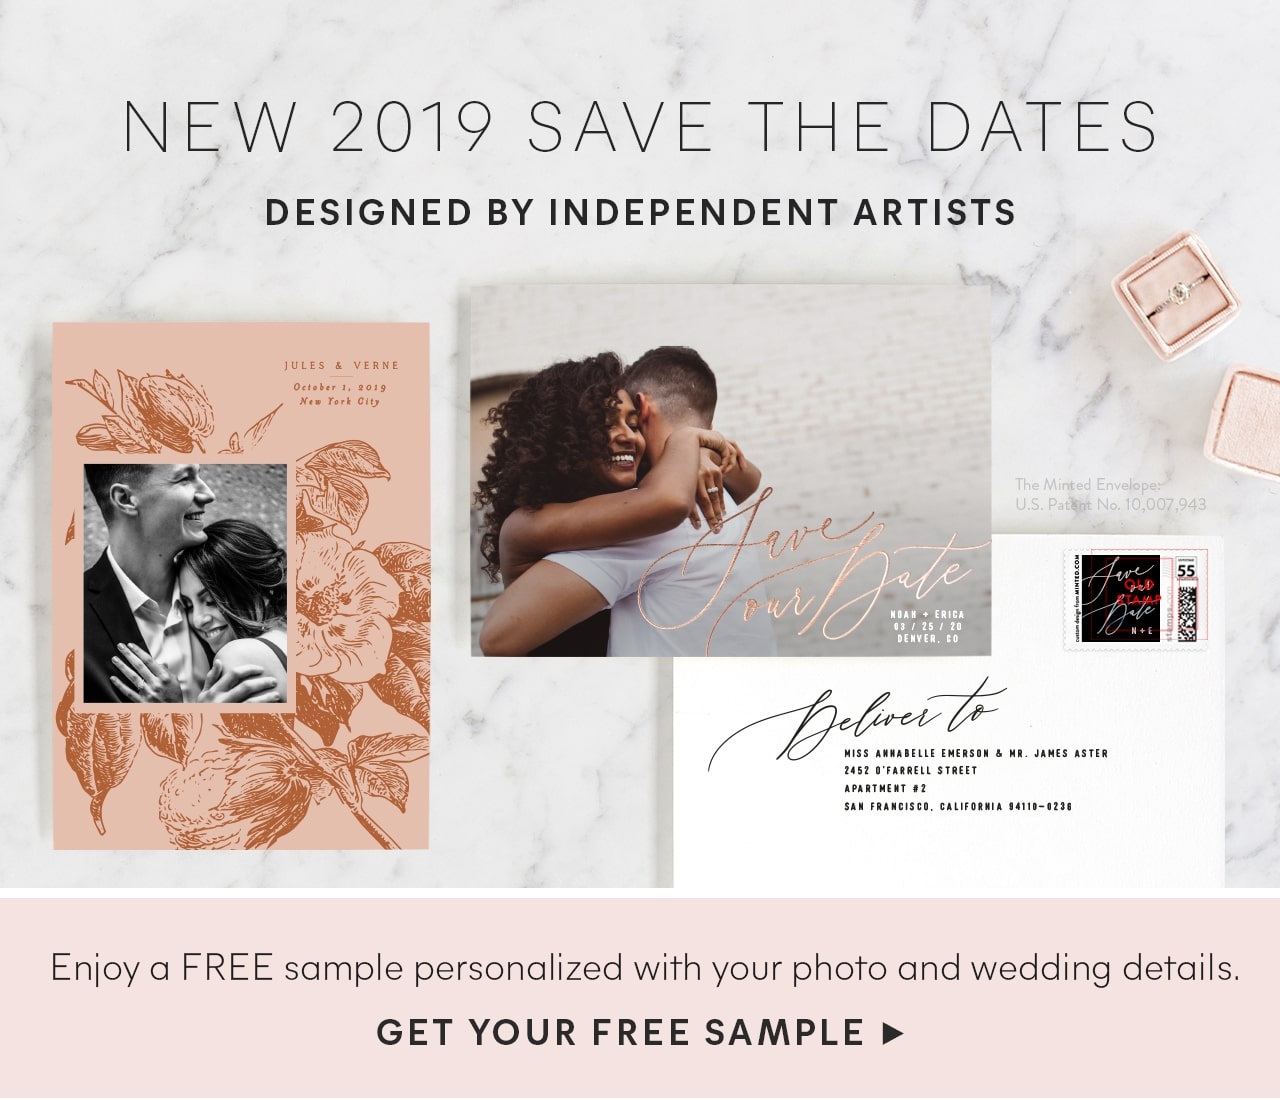 New Save the Dates